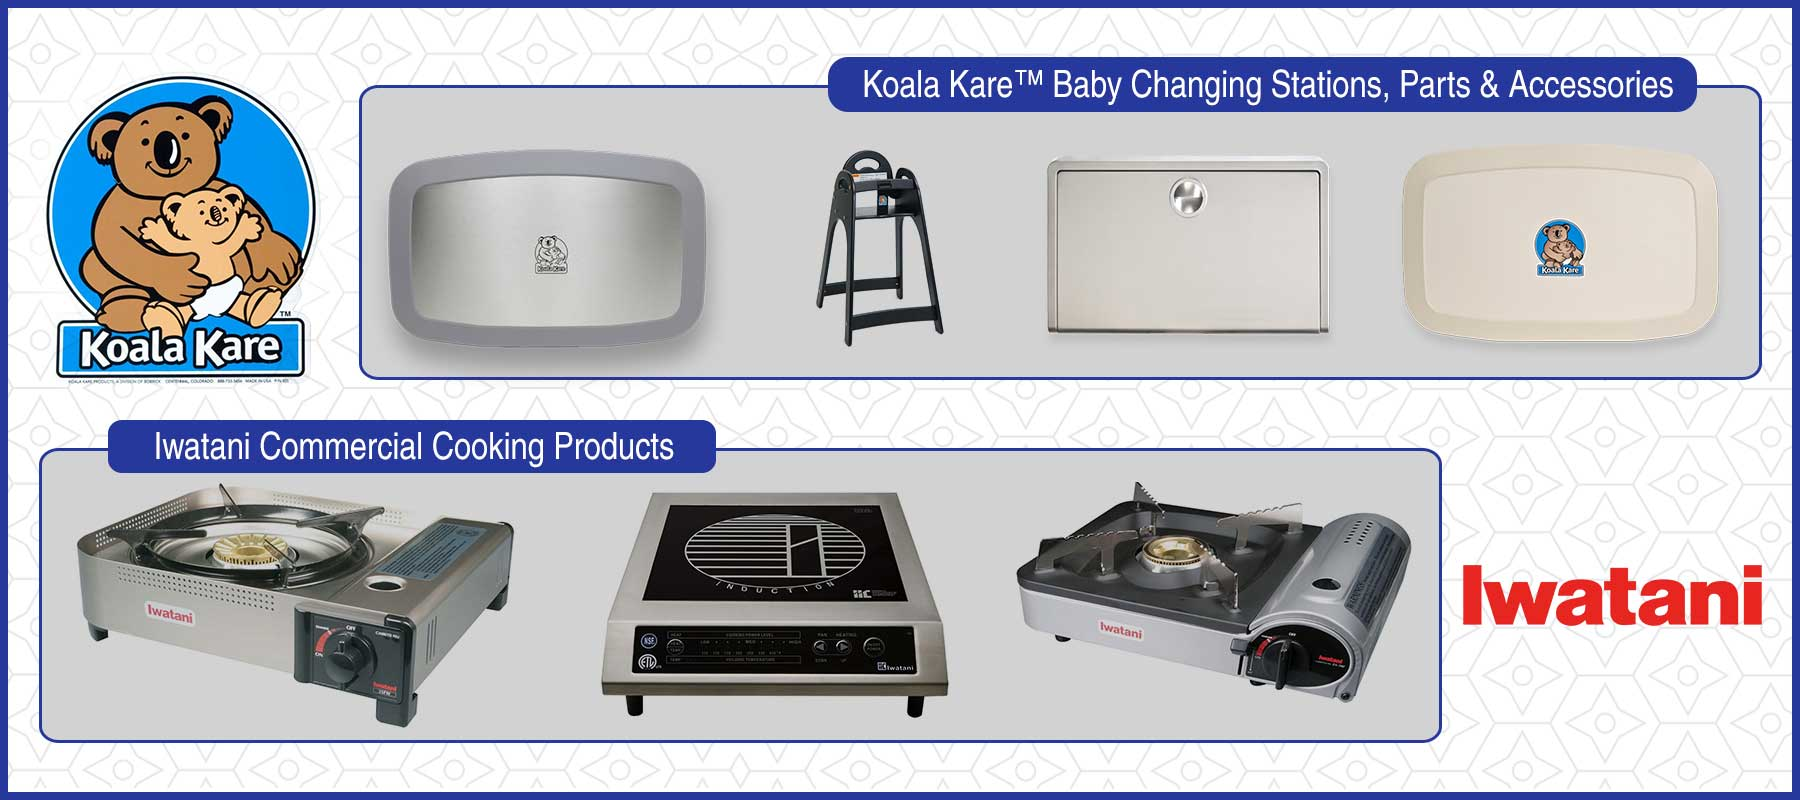 Koala Kare and Iwatani product distribution